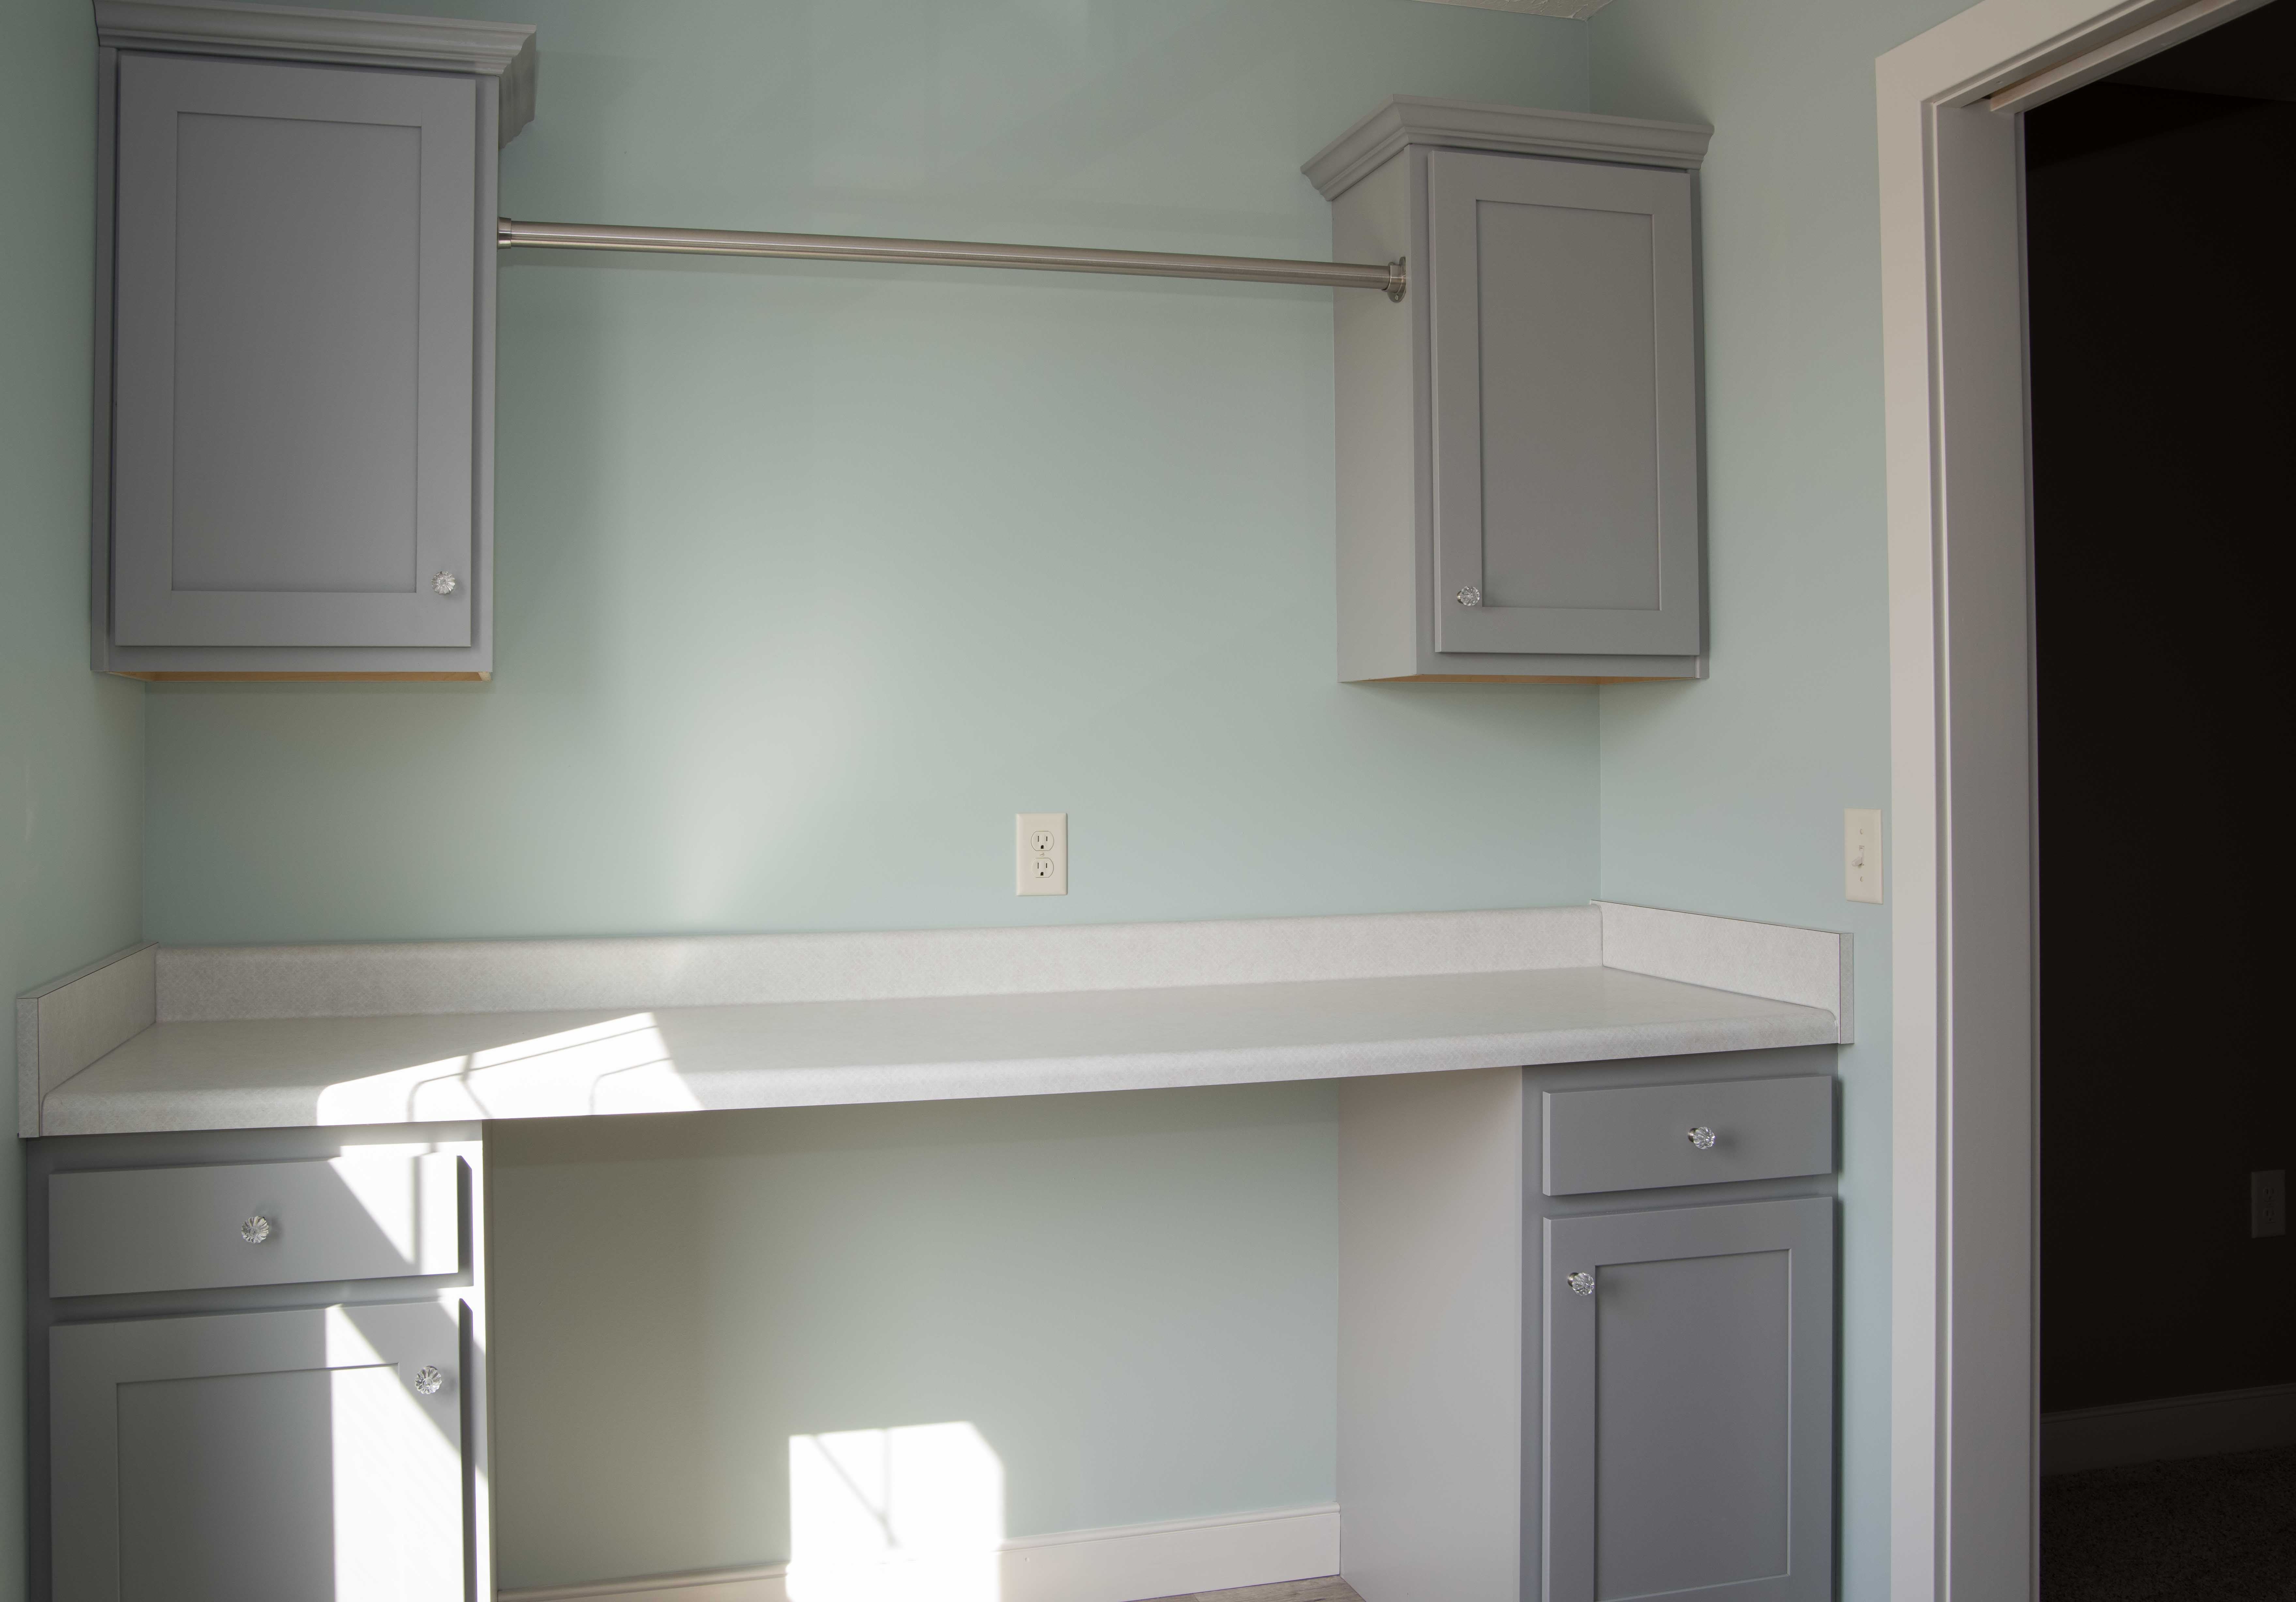 ... Hanging Rod Between Upper Cabinets And Wall To Wall Folding Area ...